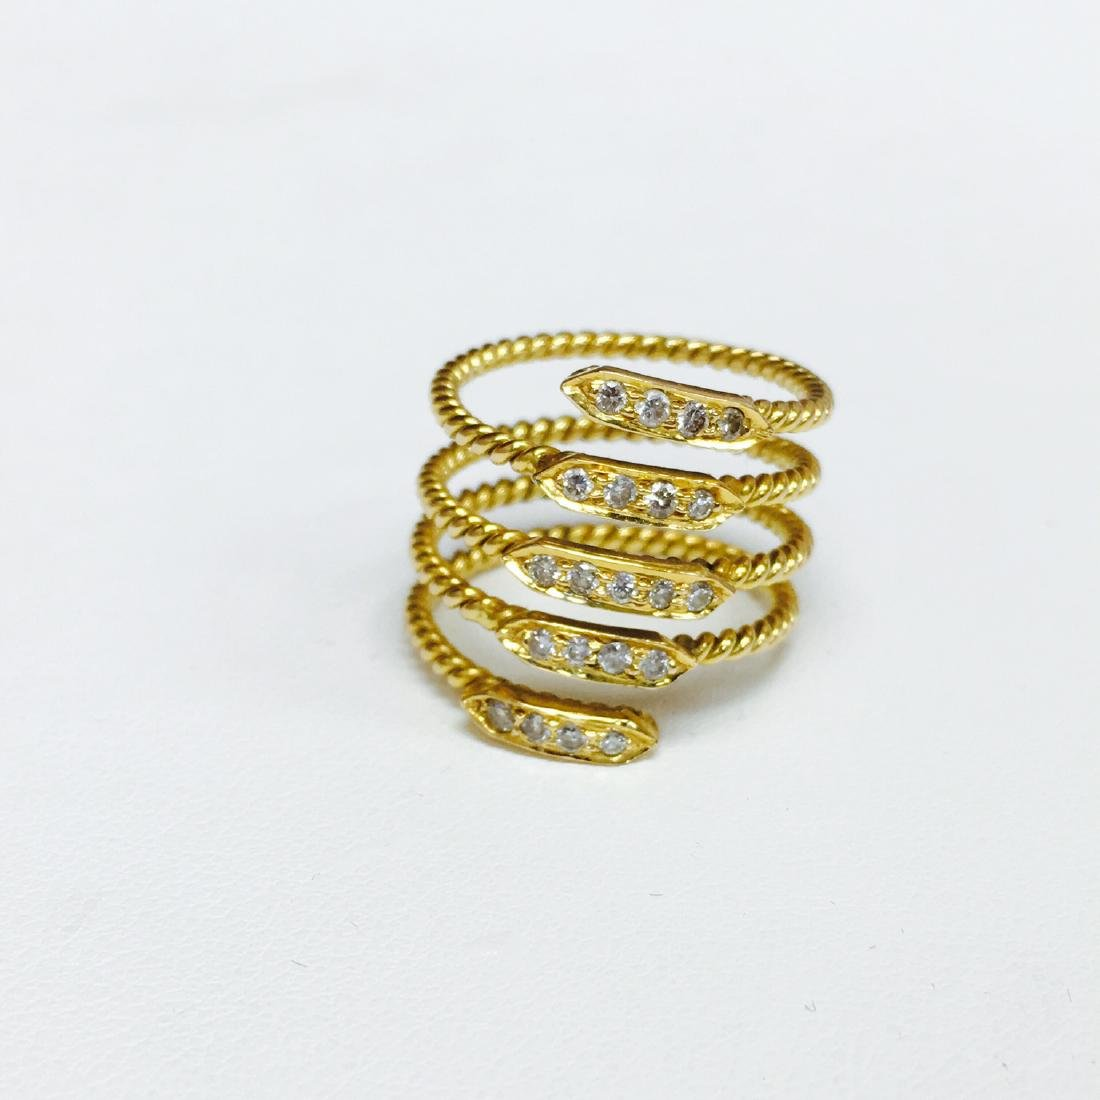 VVS Diamonds, 18K Yellow Gold Coil Design Ring